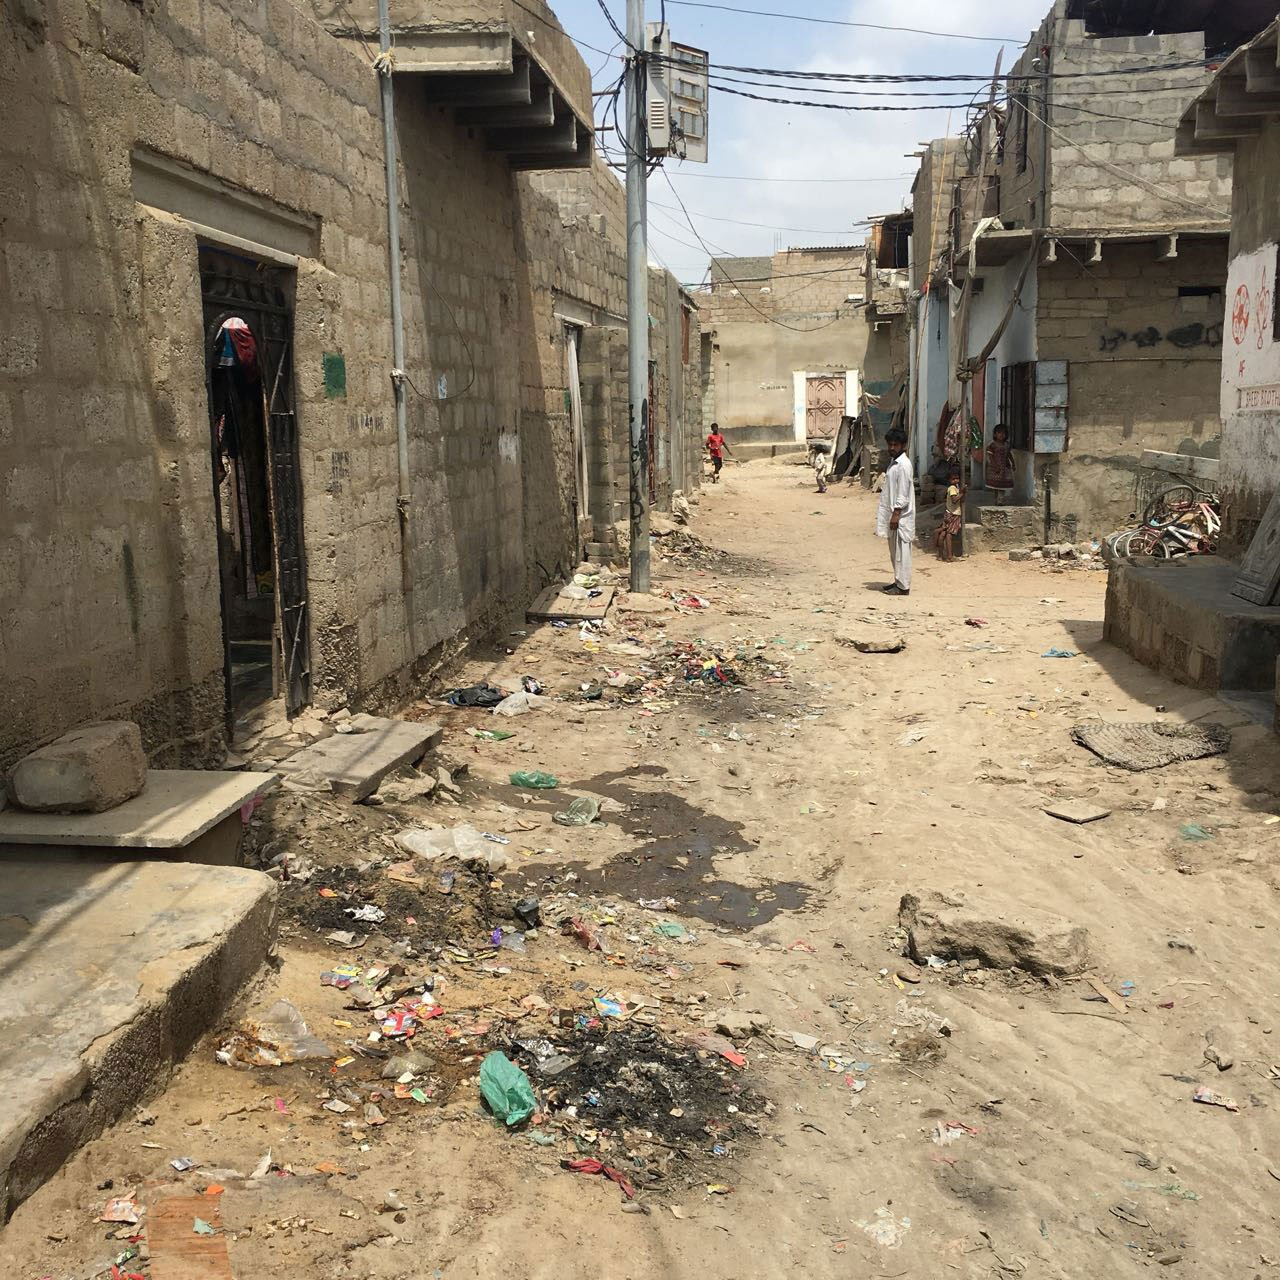 A street in Karachi's impoverished Arkanabad neighbourhood.